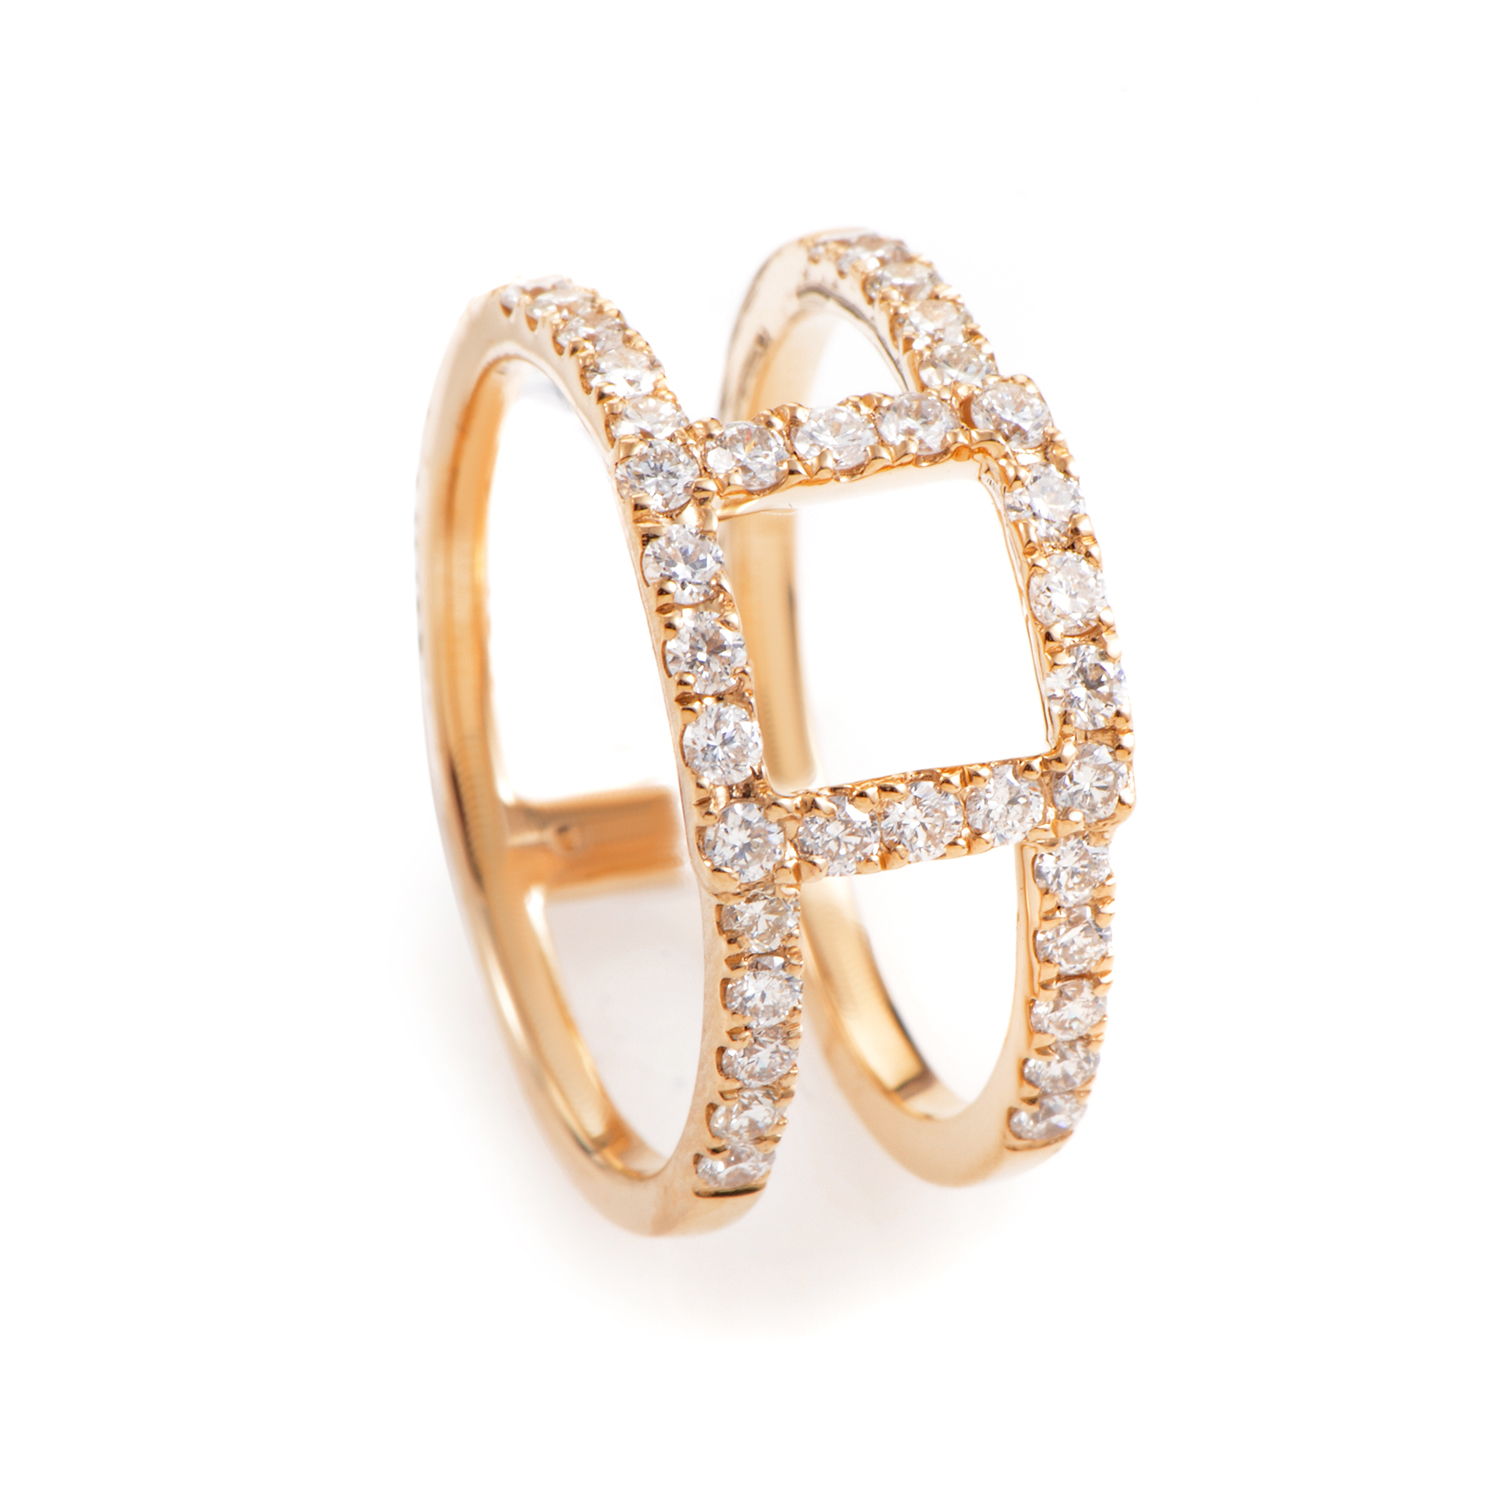 18K Rose Gold Openwork Diamond Band Ring ALR-11229R